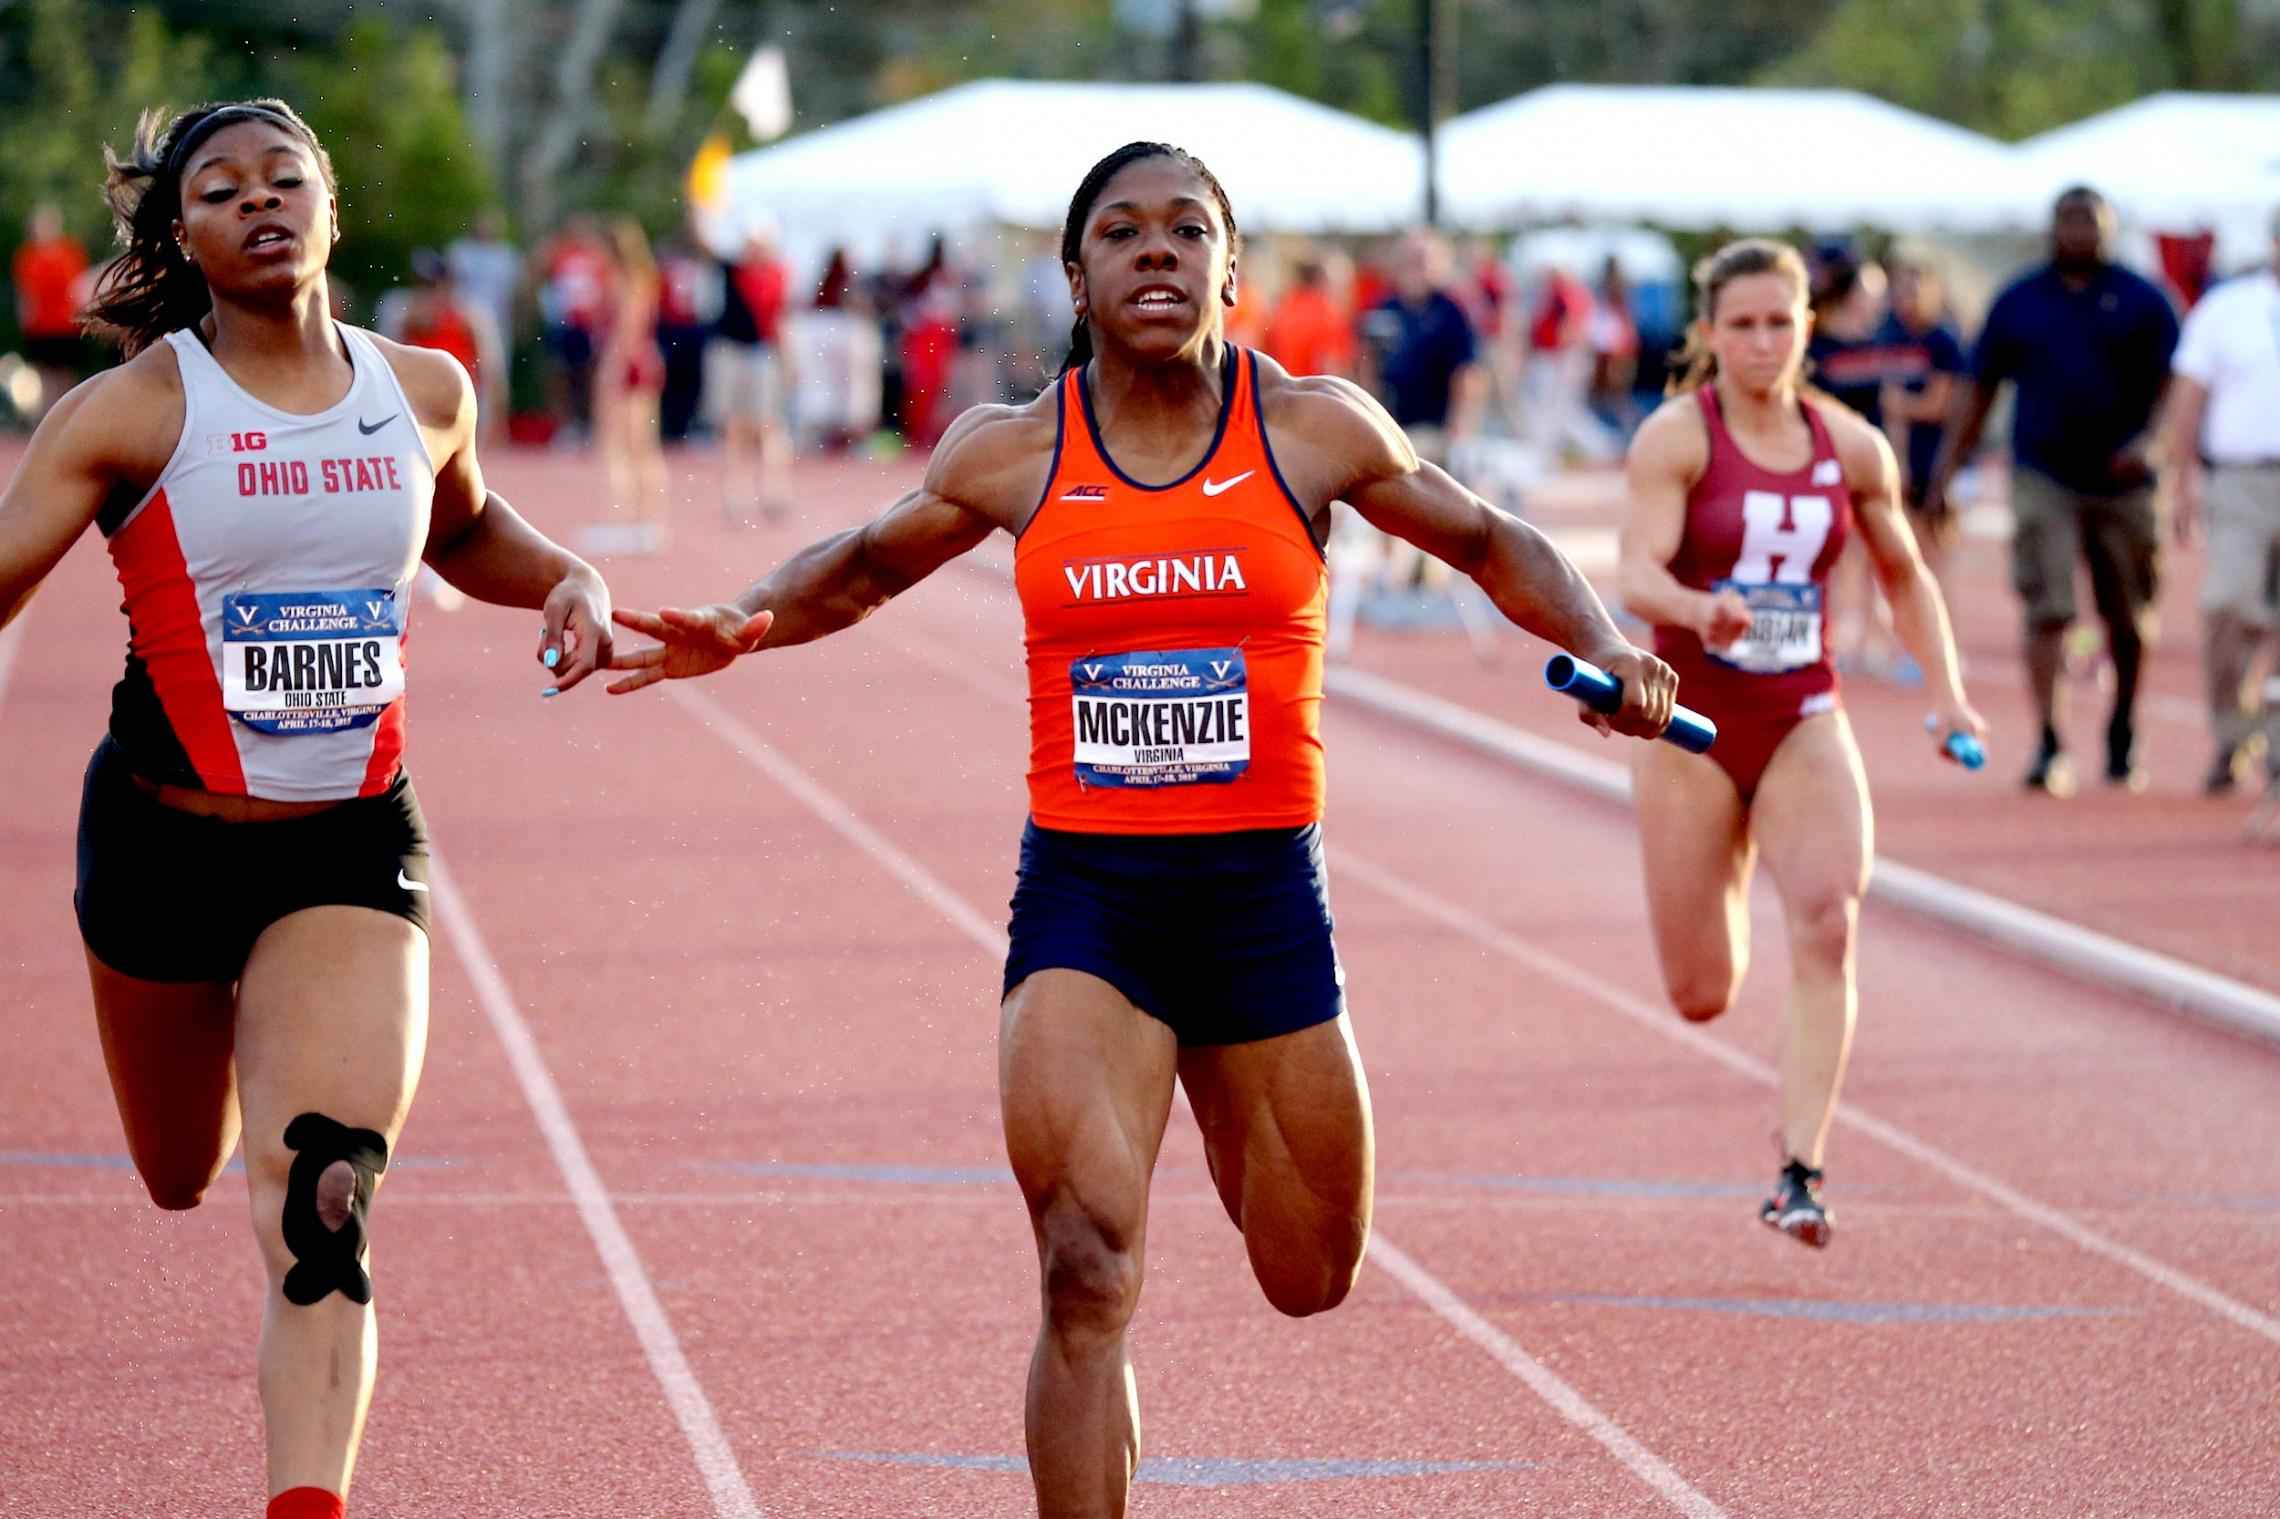 UVA sprinter Tori McKenzie was born with a rare medical condition characterized by an extremely muscular appearance and an almost total lack of body fat.